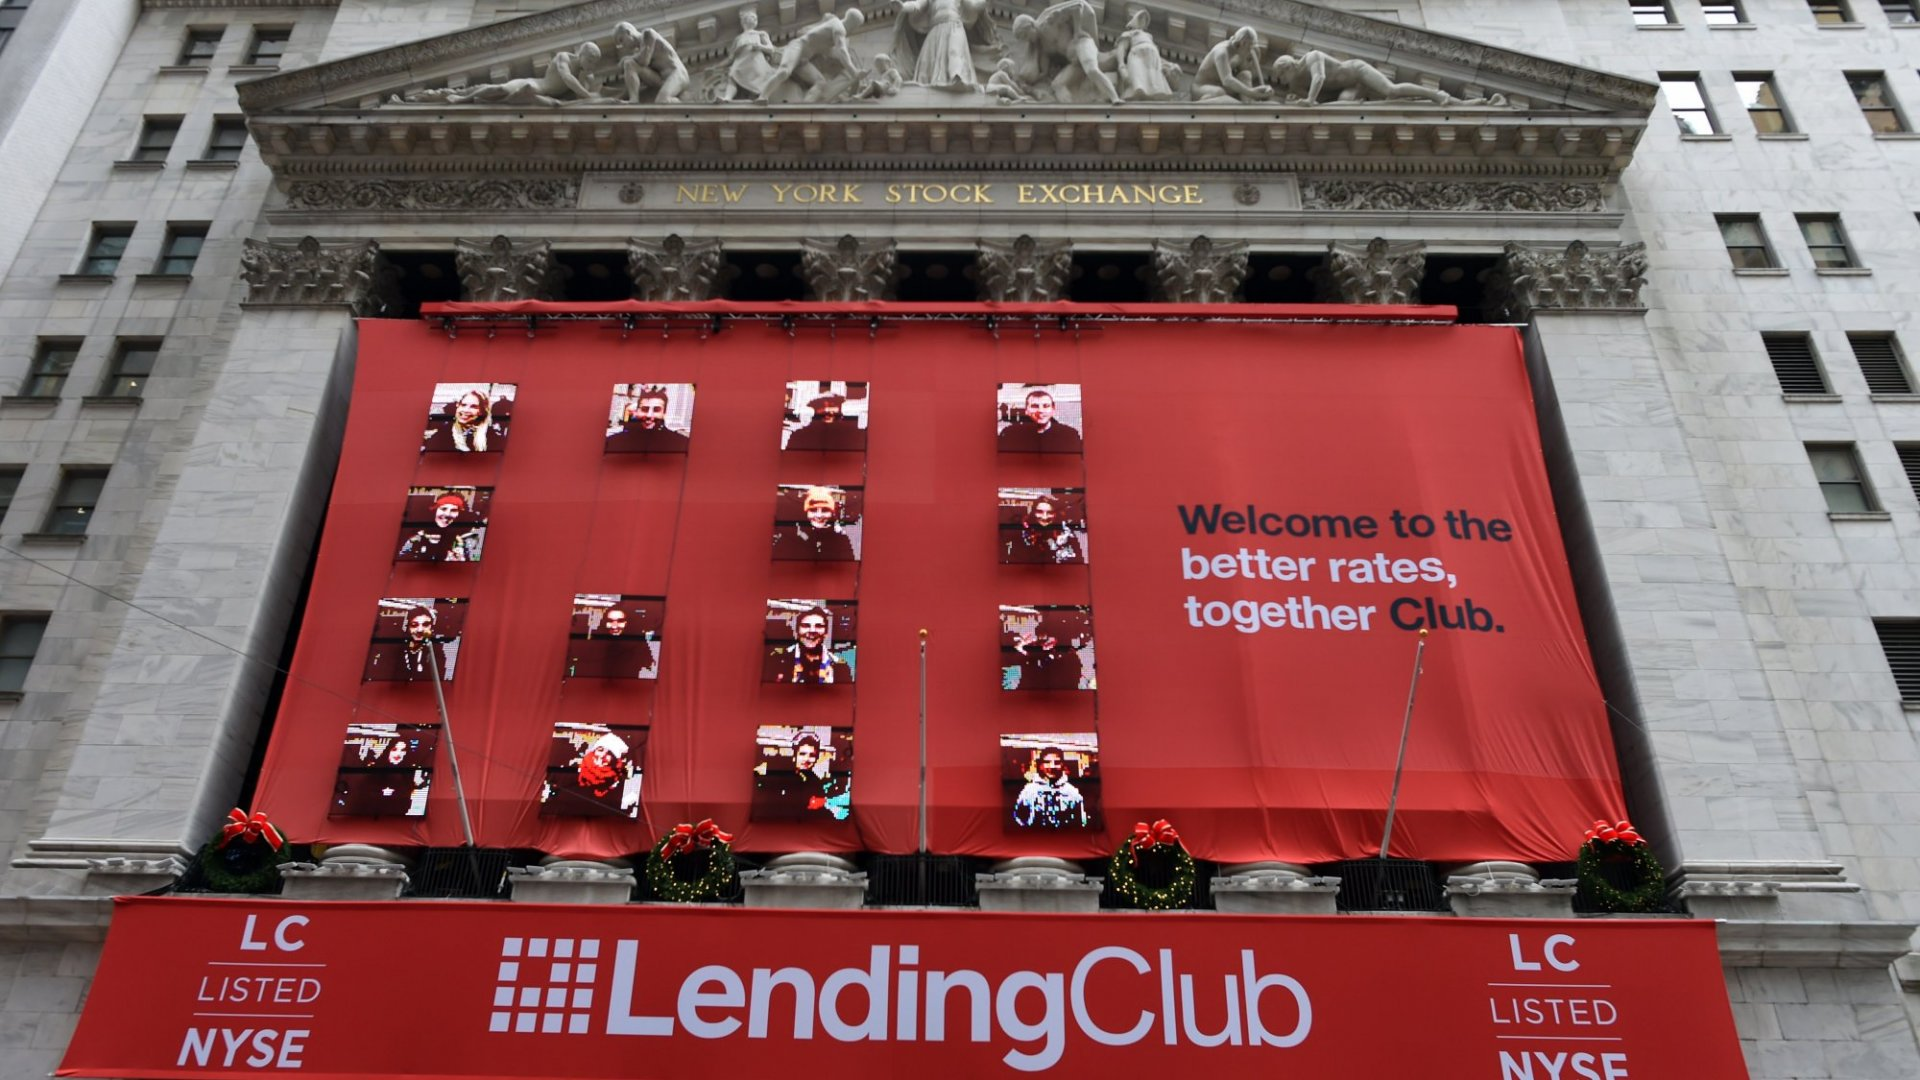 LendingClub's Third Quarter Earnings Reflect Tumultuous Year